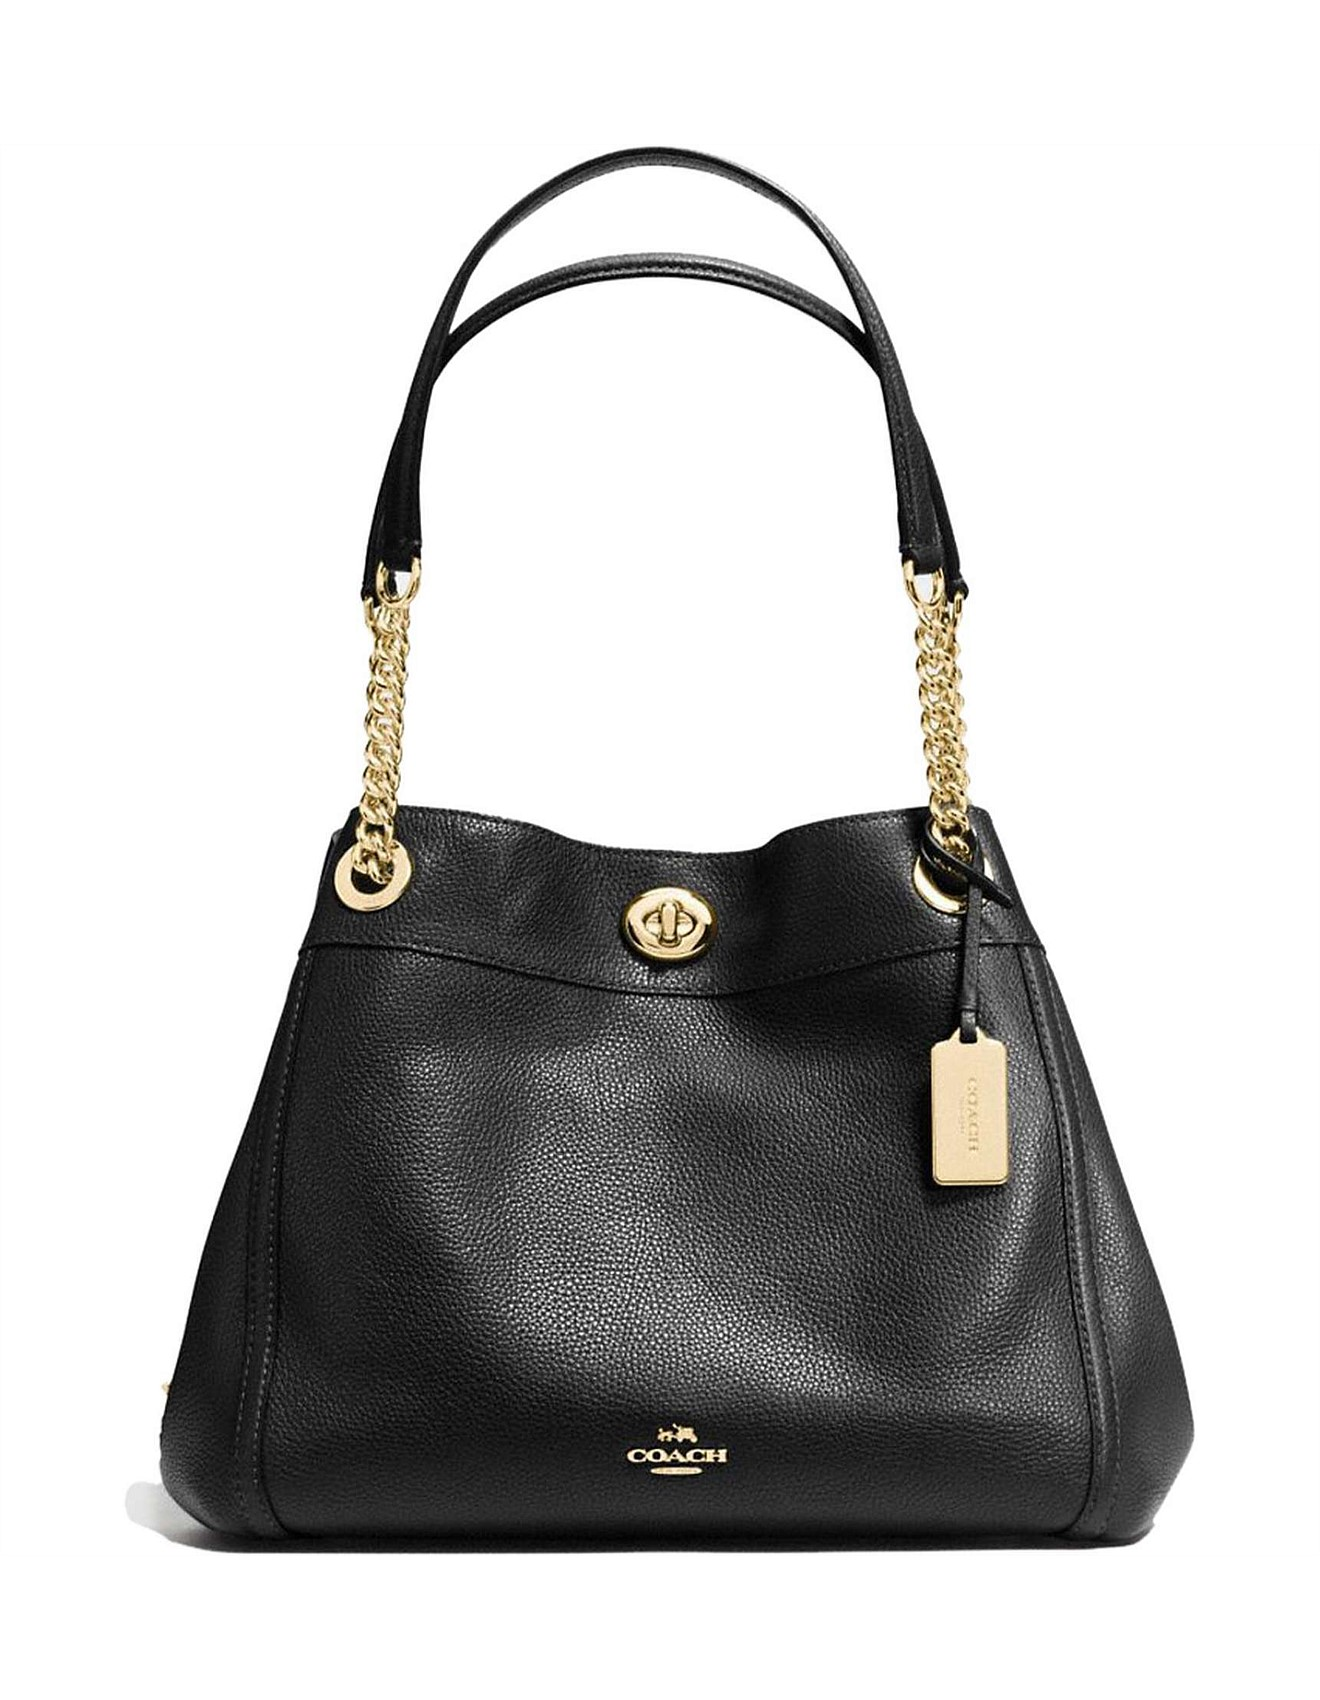 0fbf7e35a498 TURNLOCK EDIE SHOULDER BAG IN POLISHED PEBBLE LEATHER